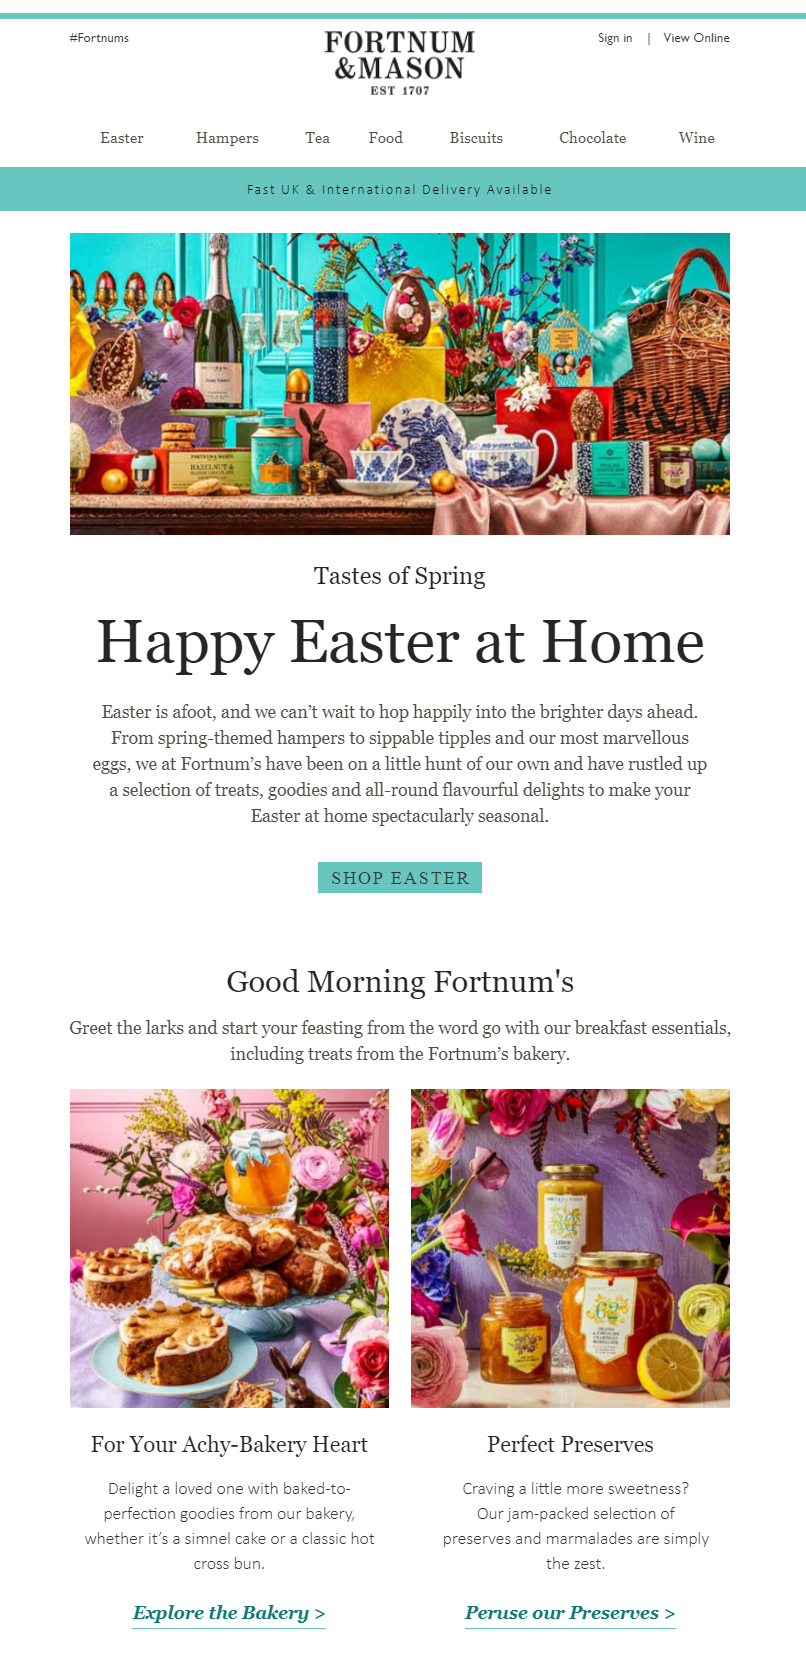 Easter email campaign by Fortnum & Mason